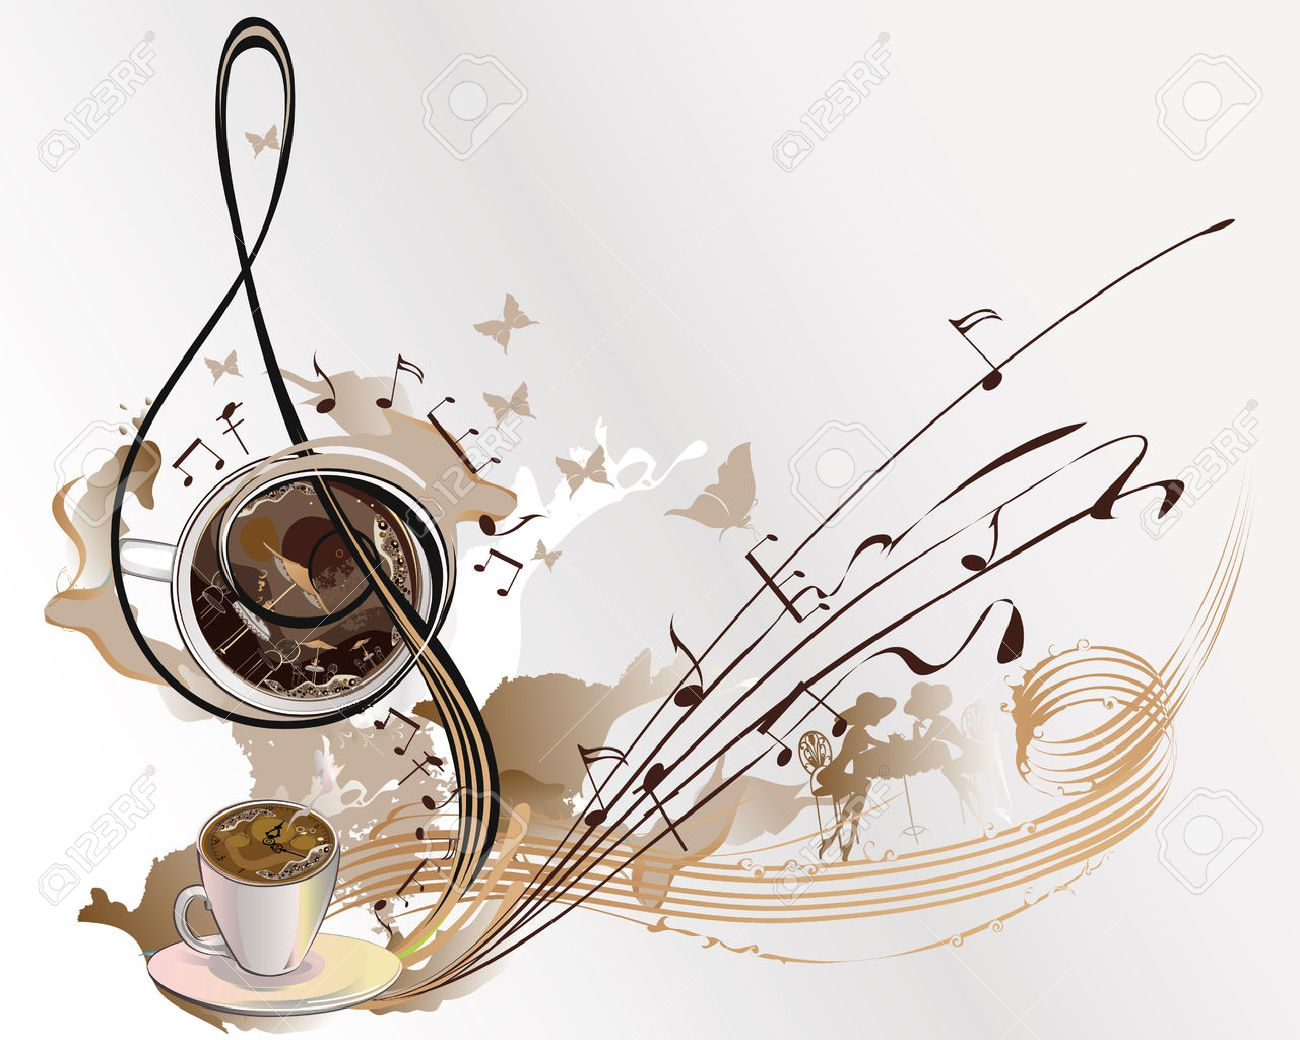 Abstract coffee music with cups of coffee, splashes, butterflies, notes. - 63373529